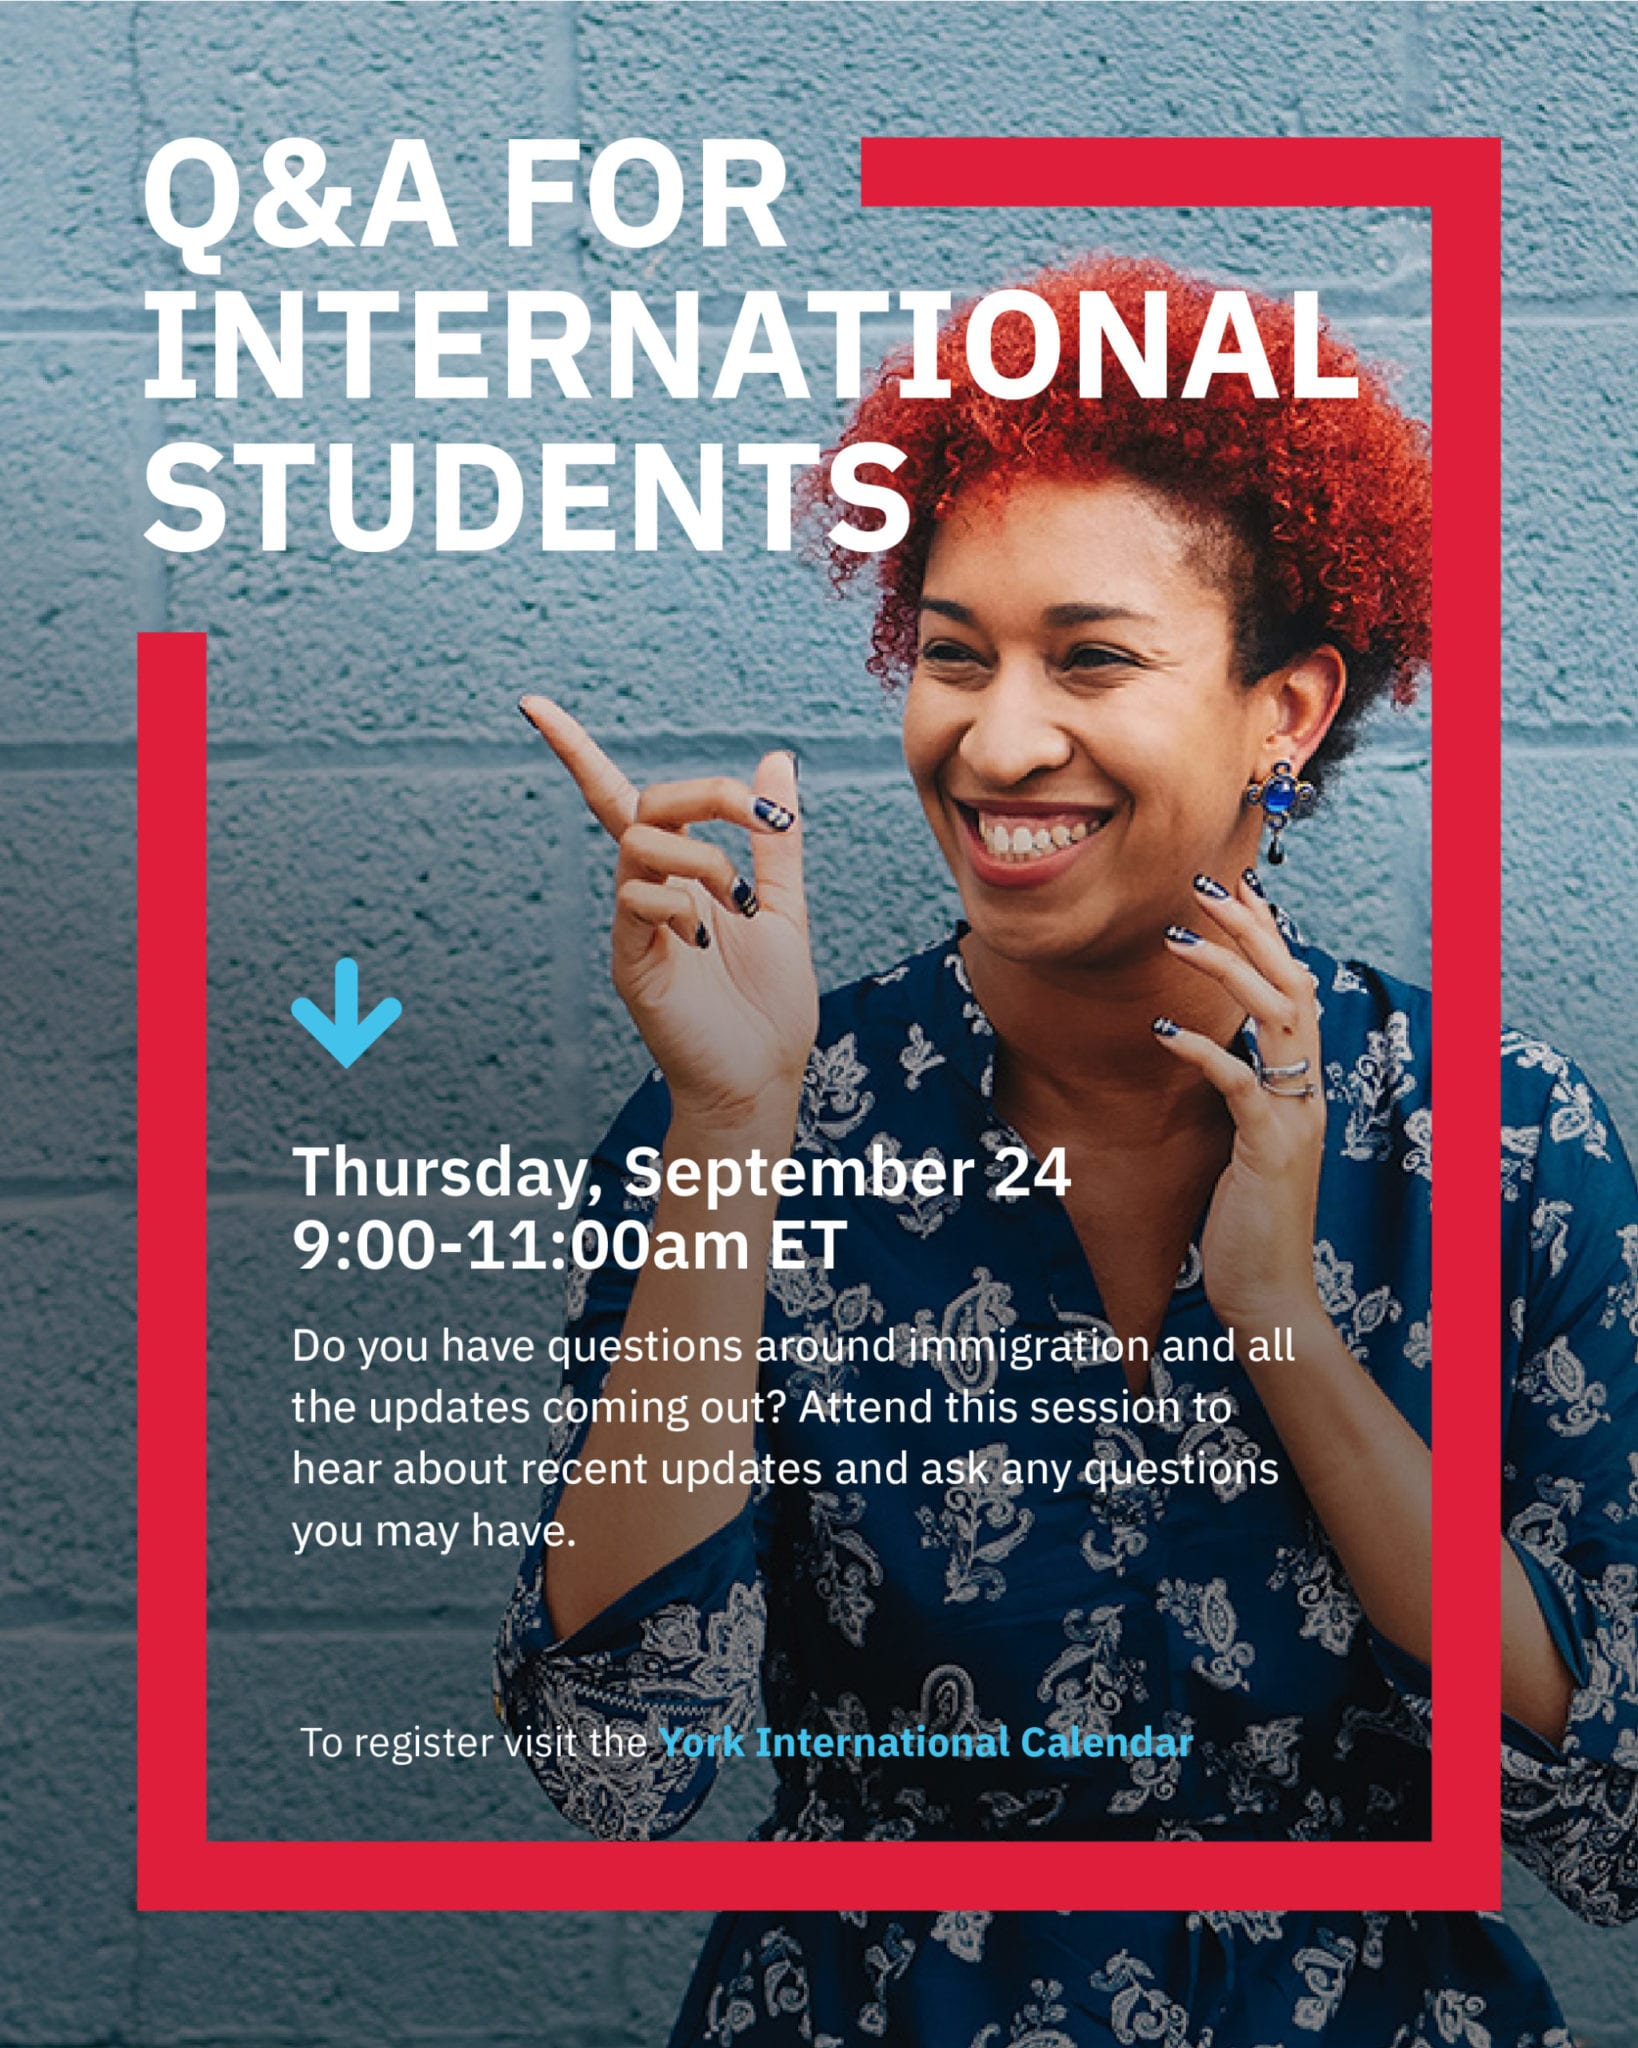 Q&A for International Students